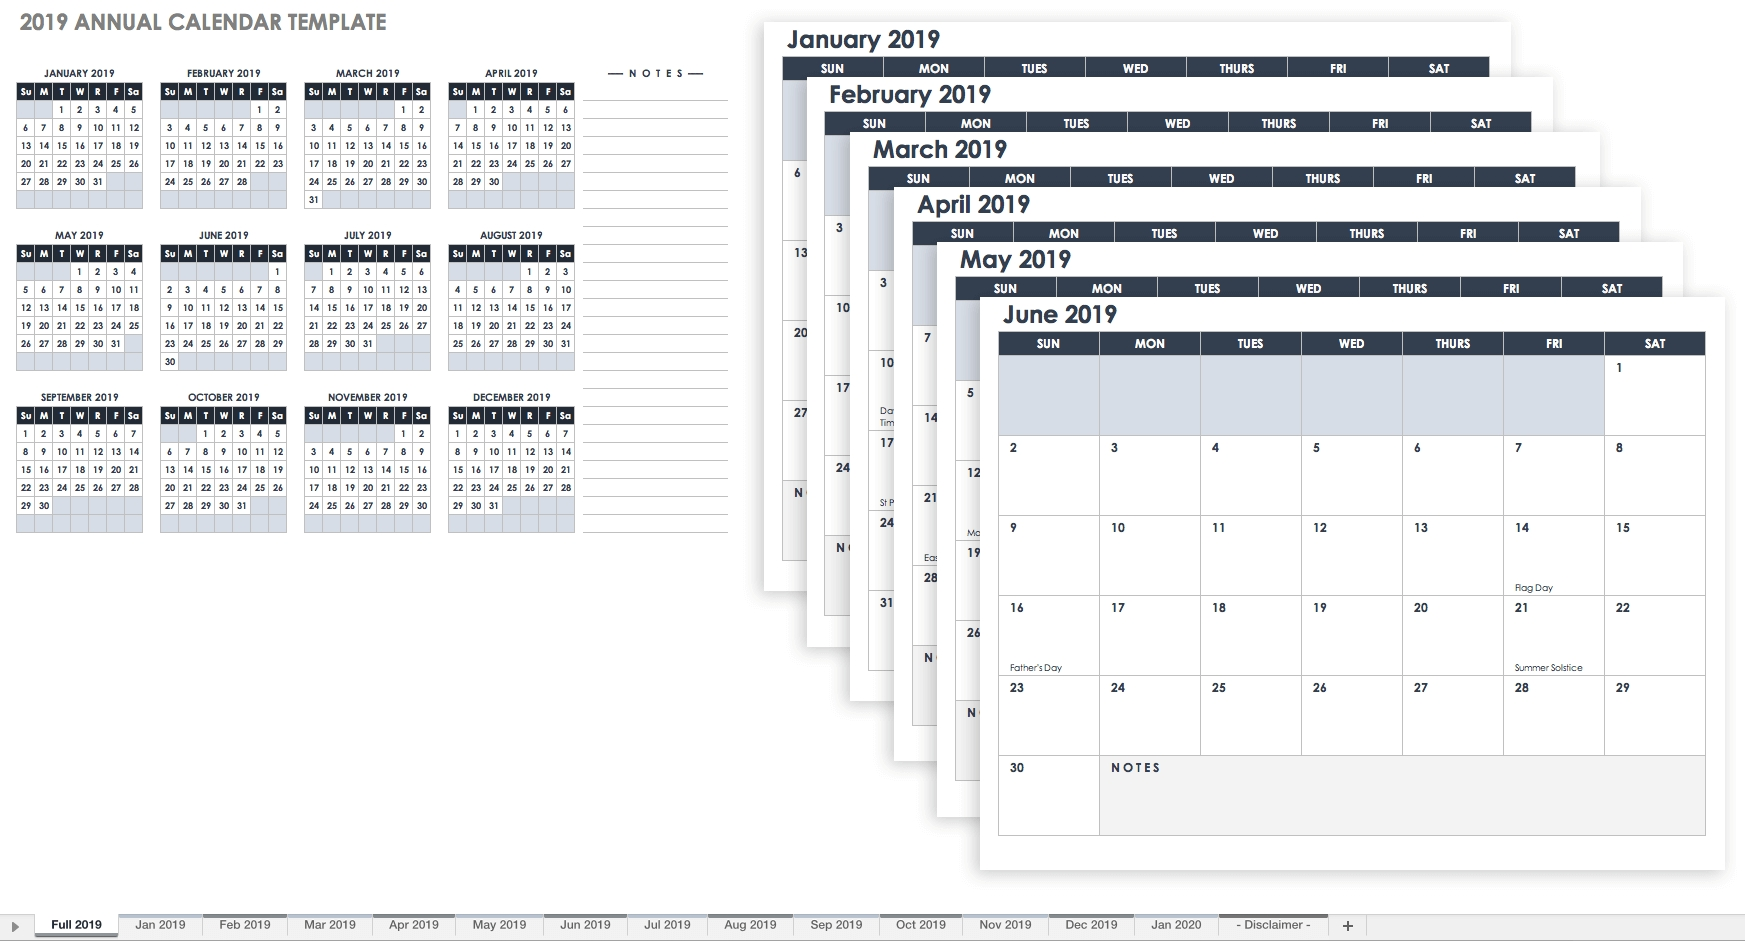 15 Free Monthly Calendar Templates | Smartsheet intended for 3 Month Calendar Template Word